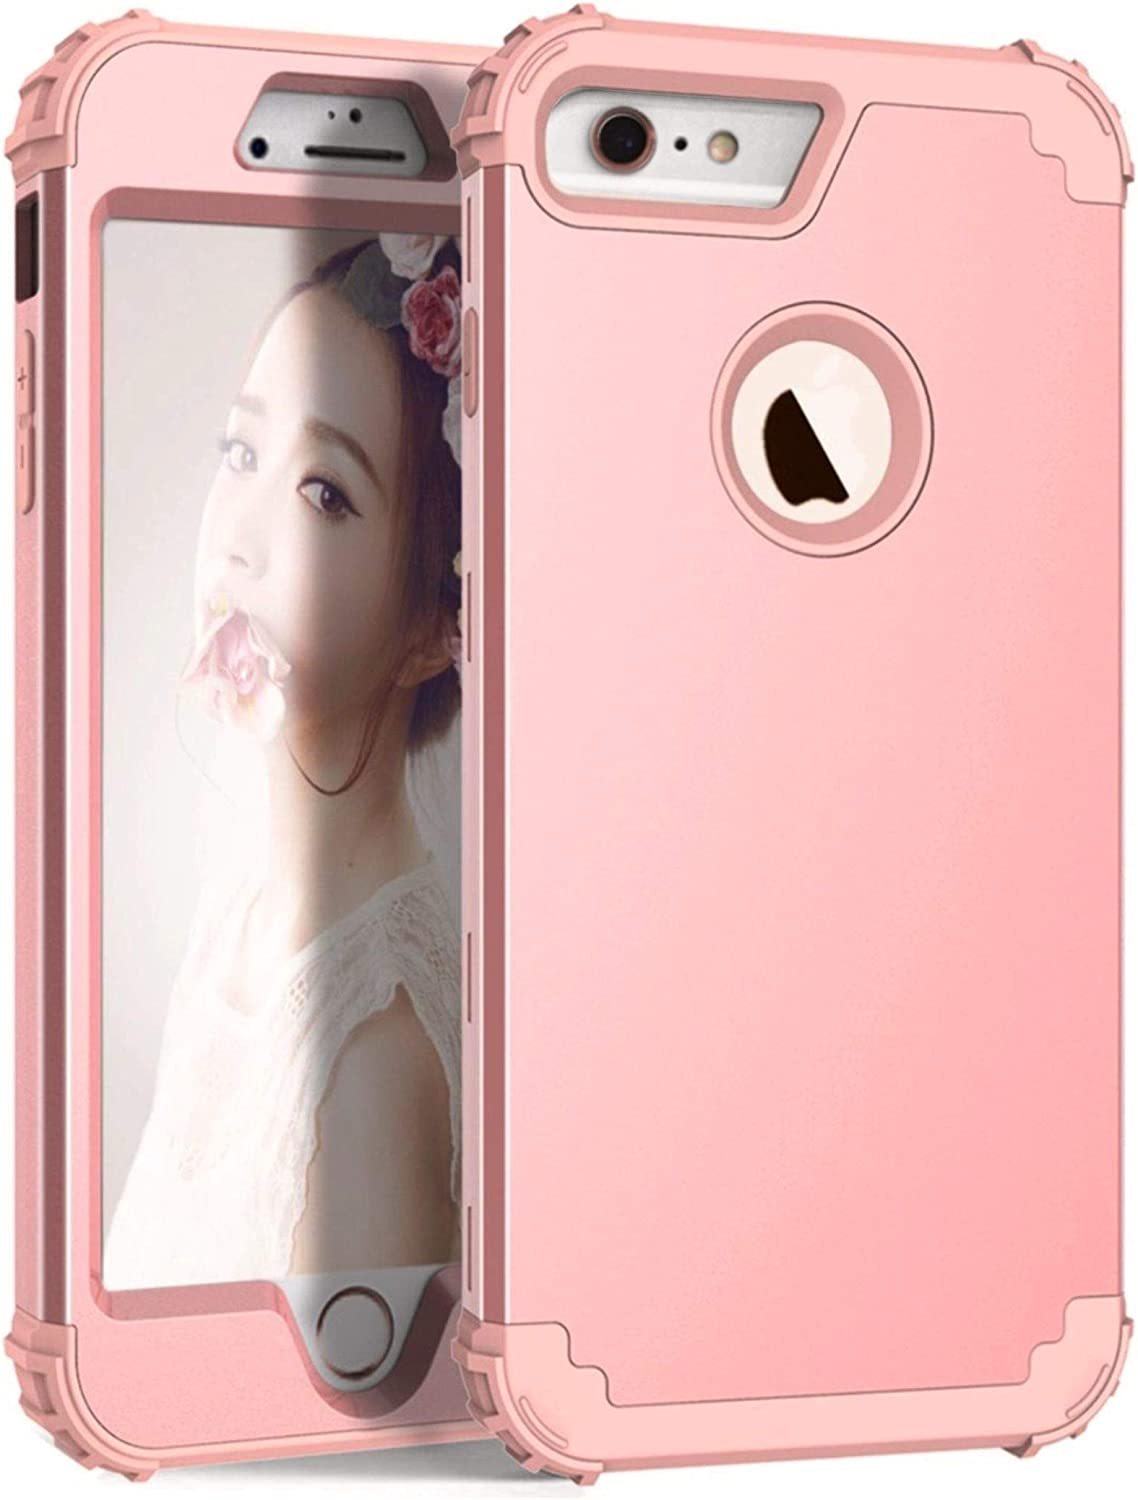 AWINNING iPhone 6 Plus iPhone 6s Plus Case Heavy Duty Shockproof Armor Defender 3in 1 Hybrid Hard PC & Soft Silicone Full Body Protective Phone Case for iPhone 6/6s Plus 5.5 inch – Rose gold